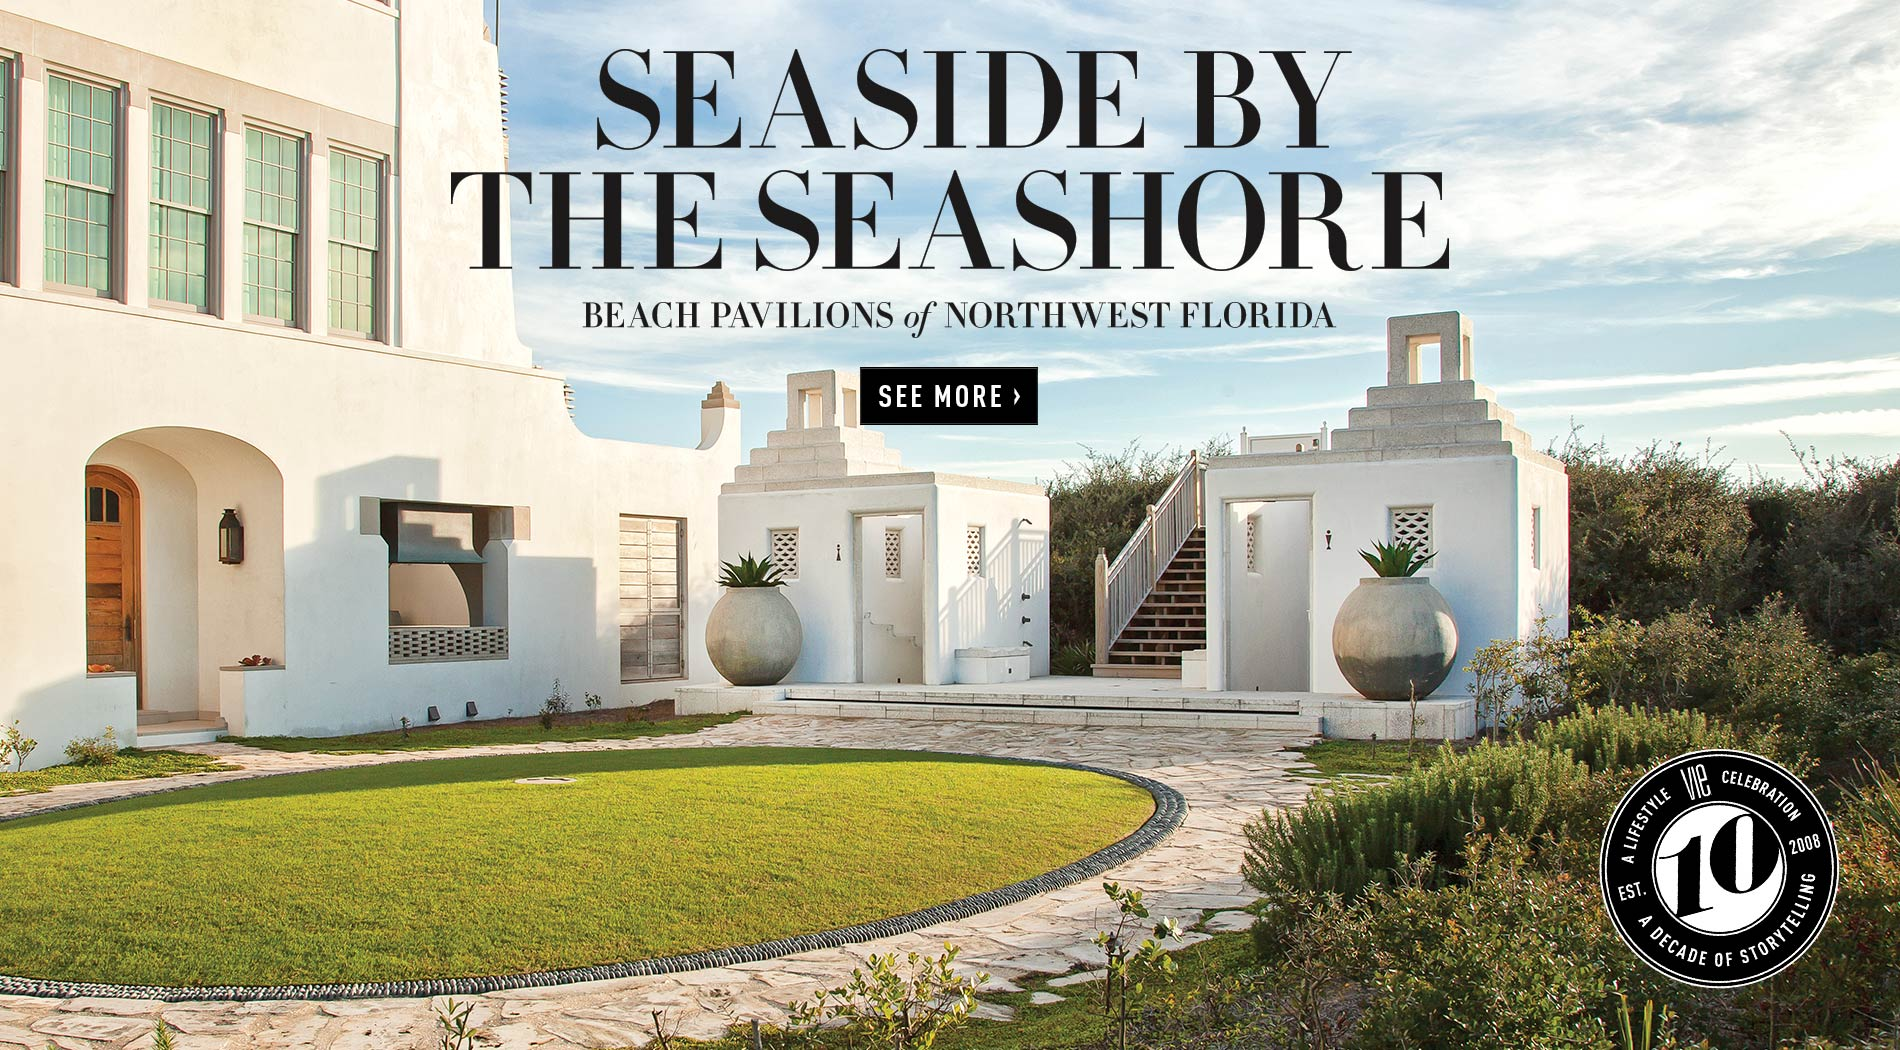 VIE Magazine - June 2018 Travel & Tech Issue - Beach Pavilions of Northwest Florida